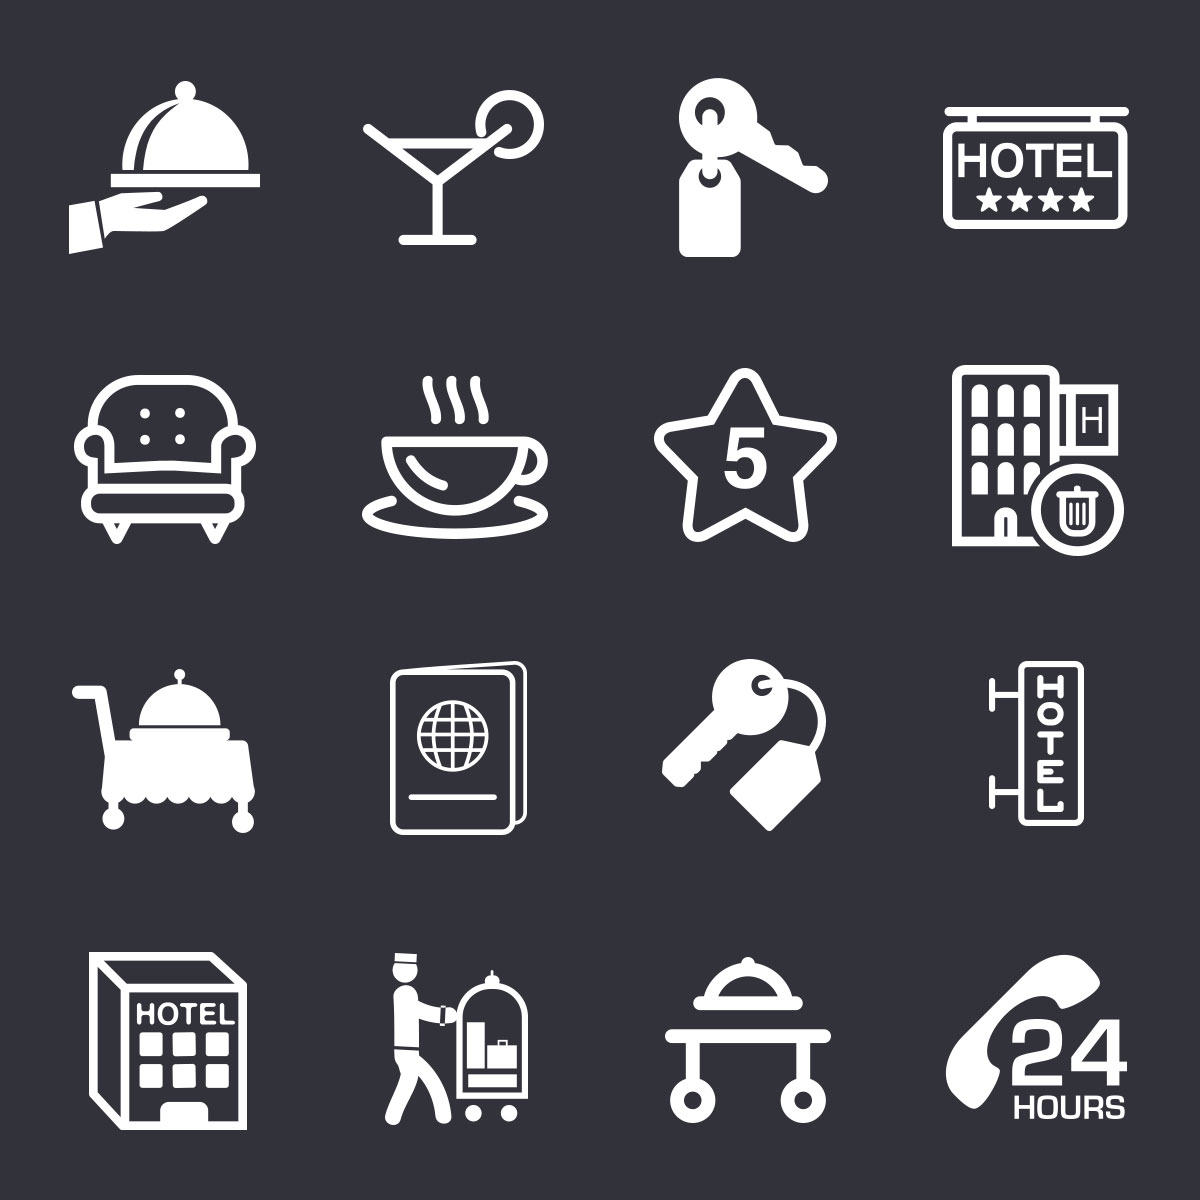 free-hotel-icons-set-psd